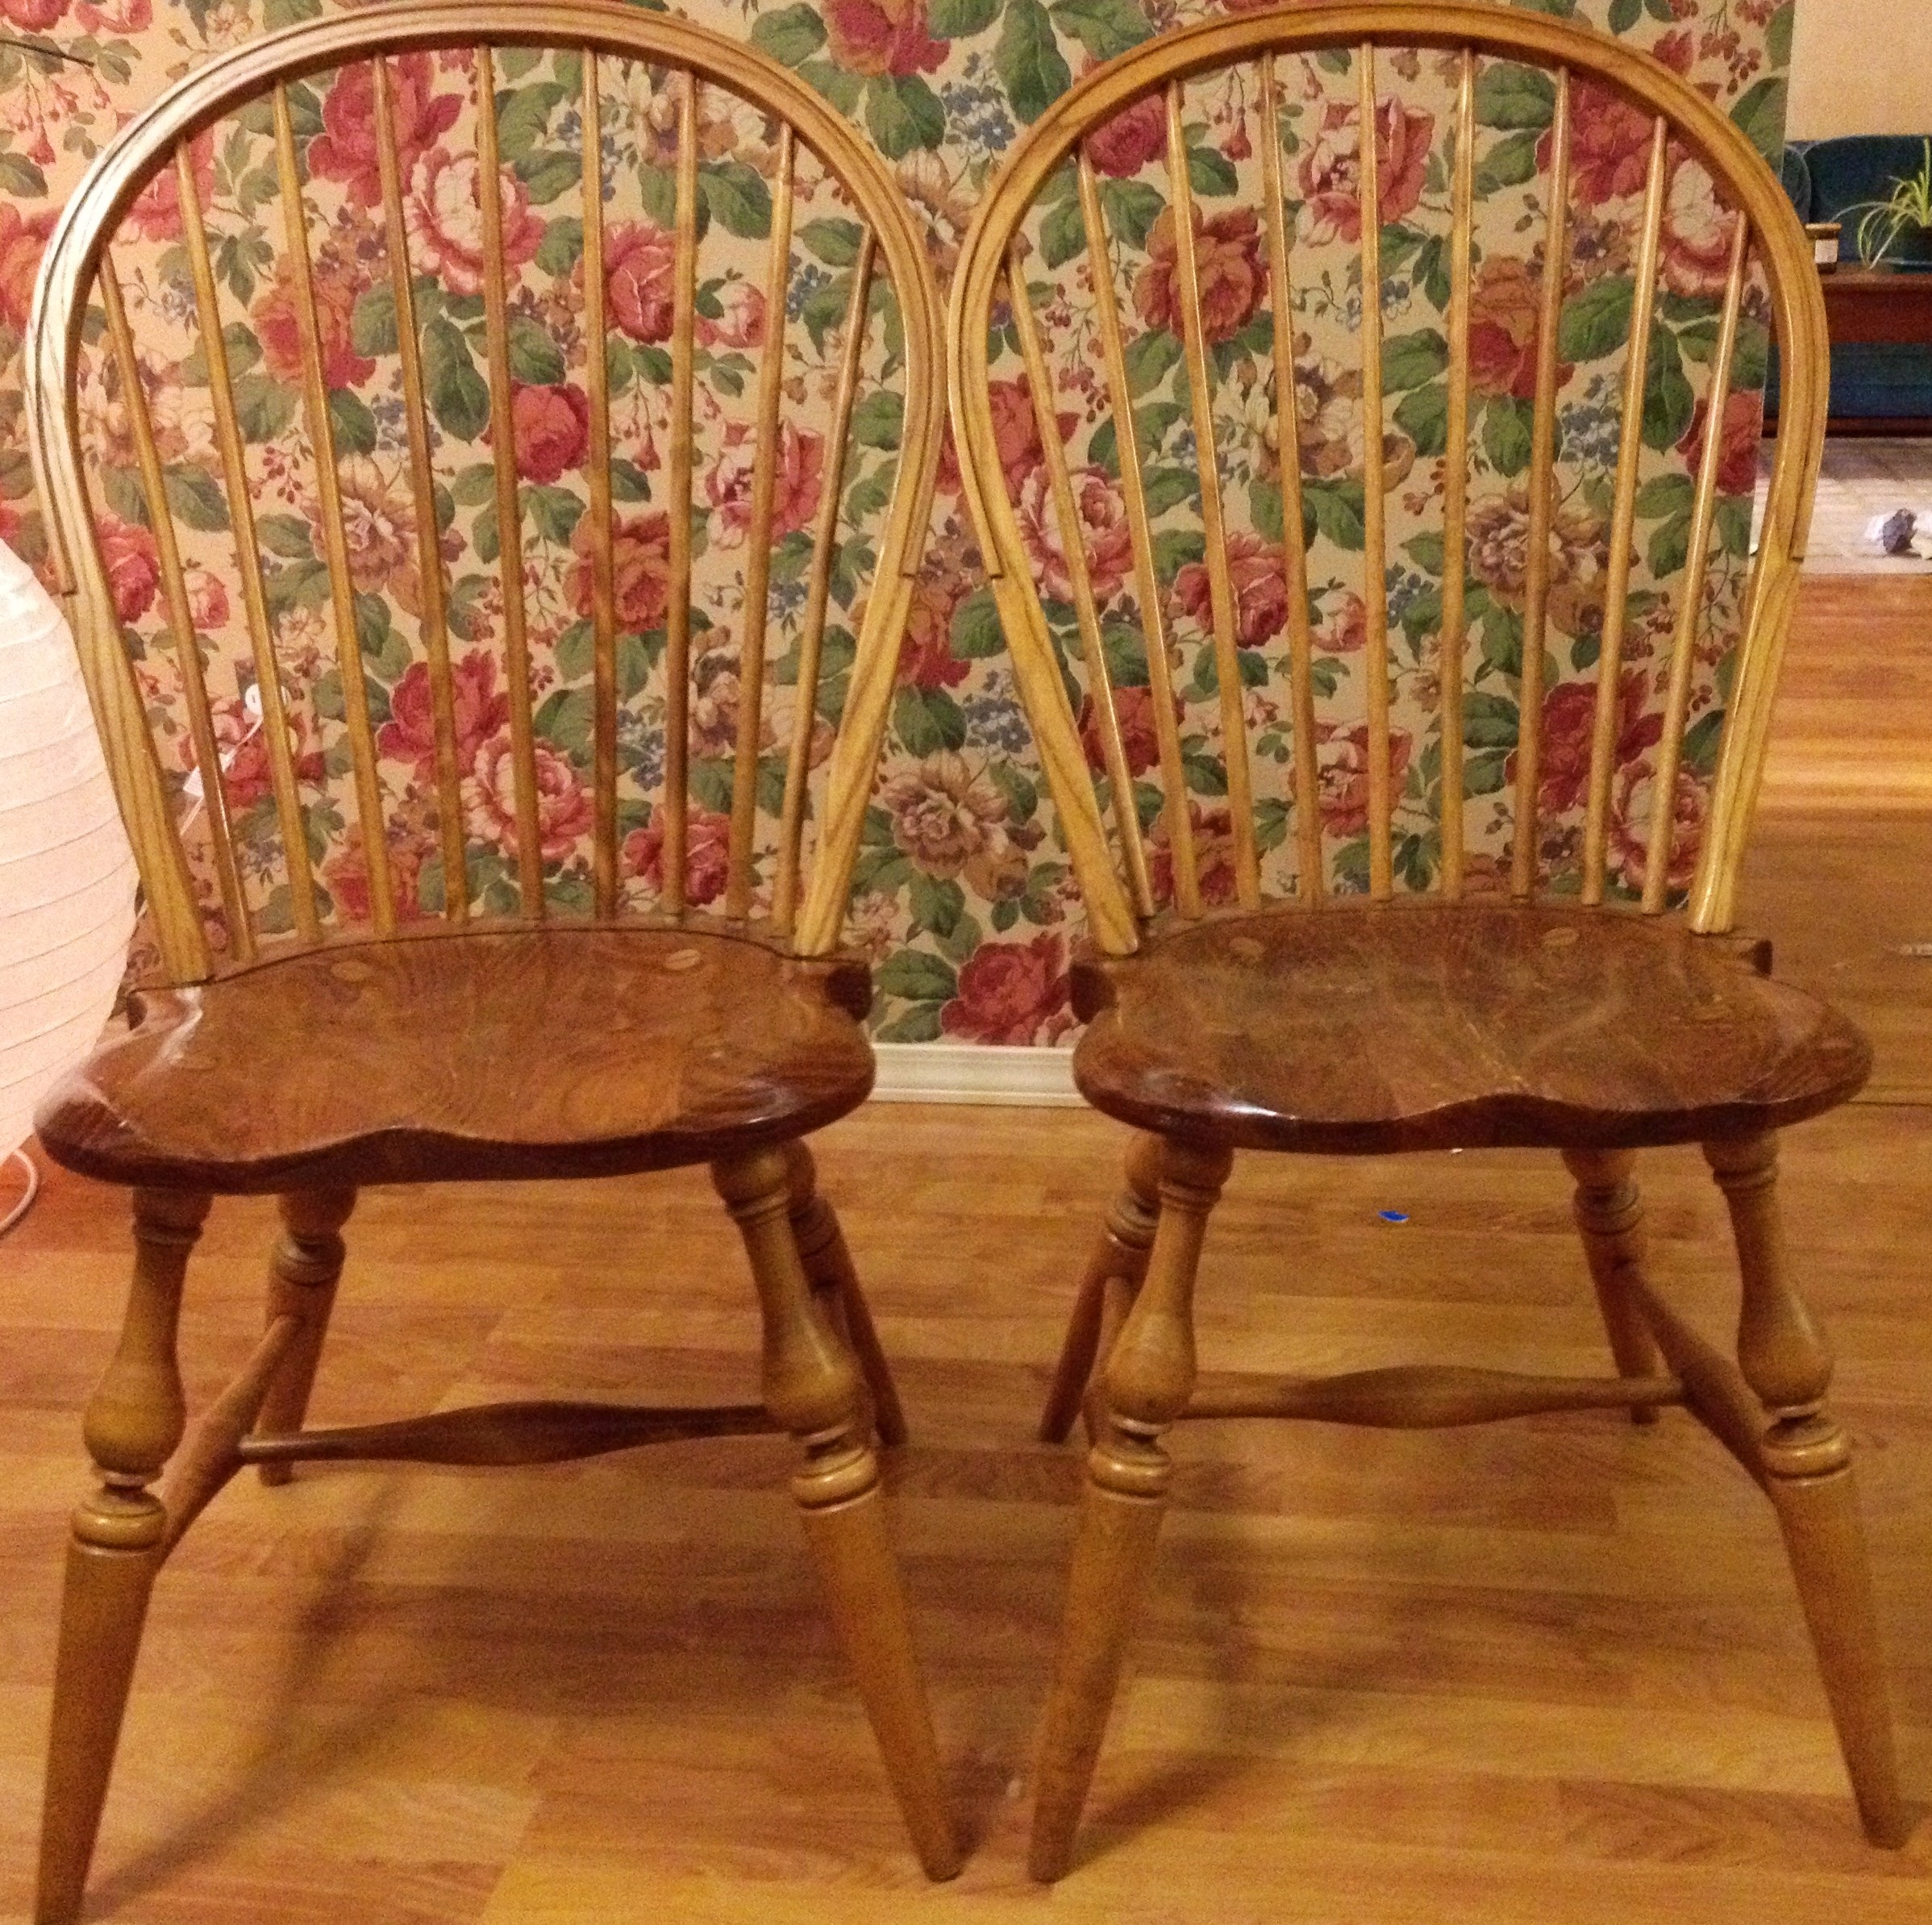 Antique Furniture Appraisal: Set Of S Bent And Bros Chairs Antique Appraisal